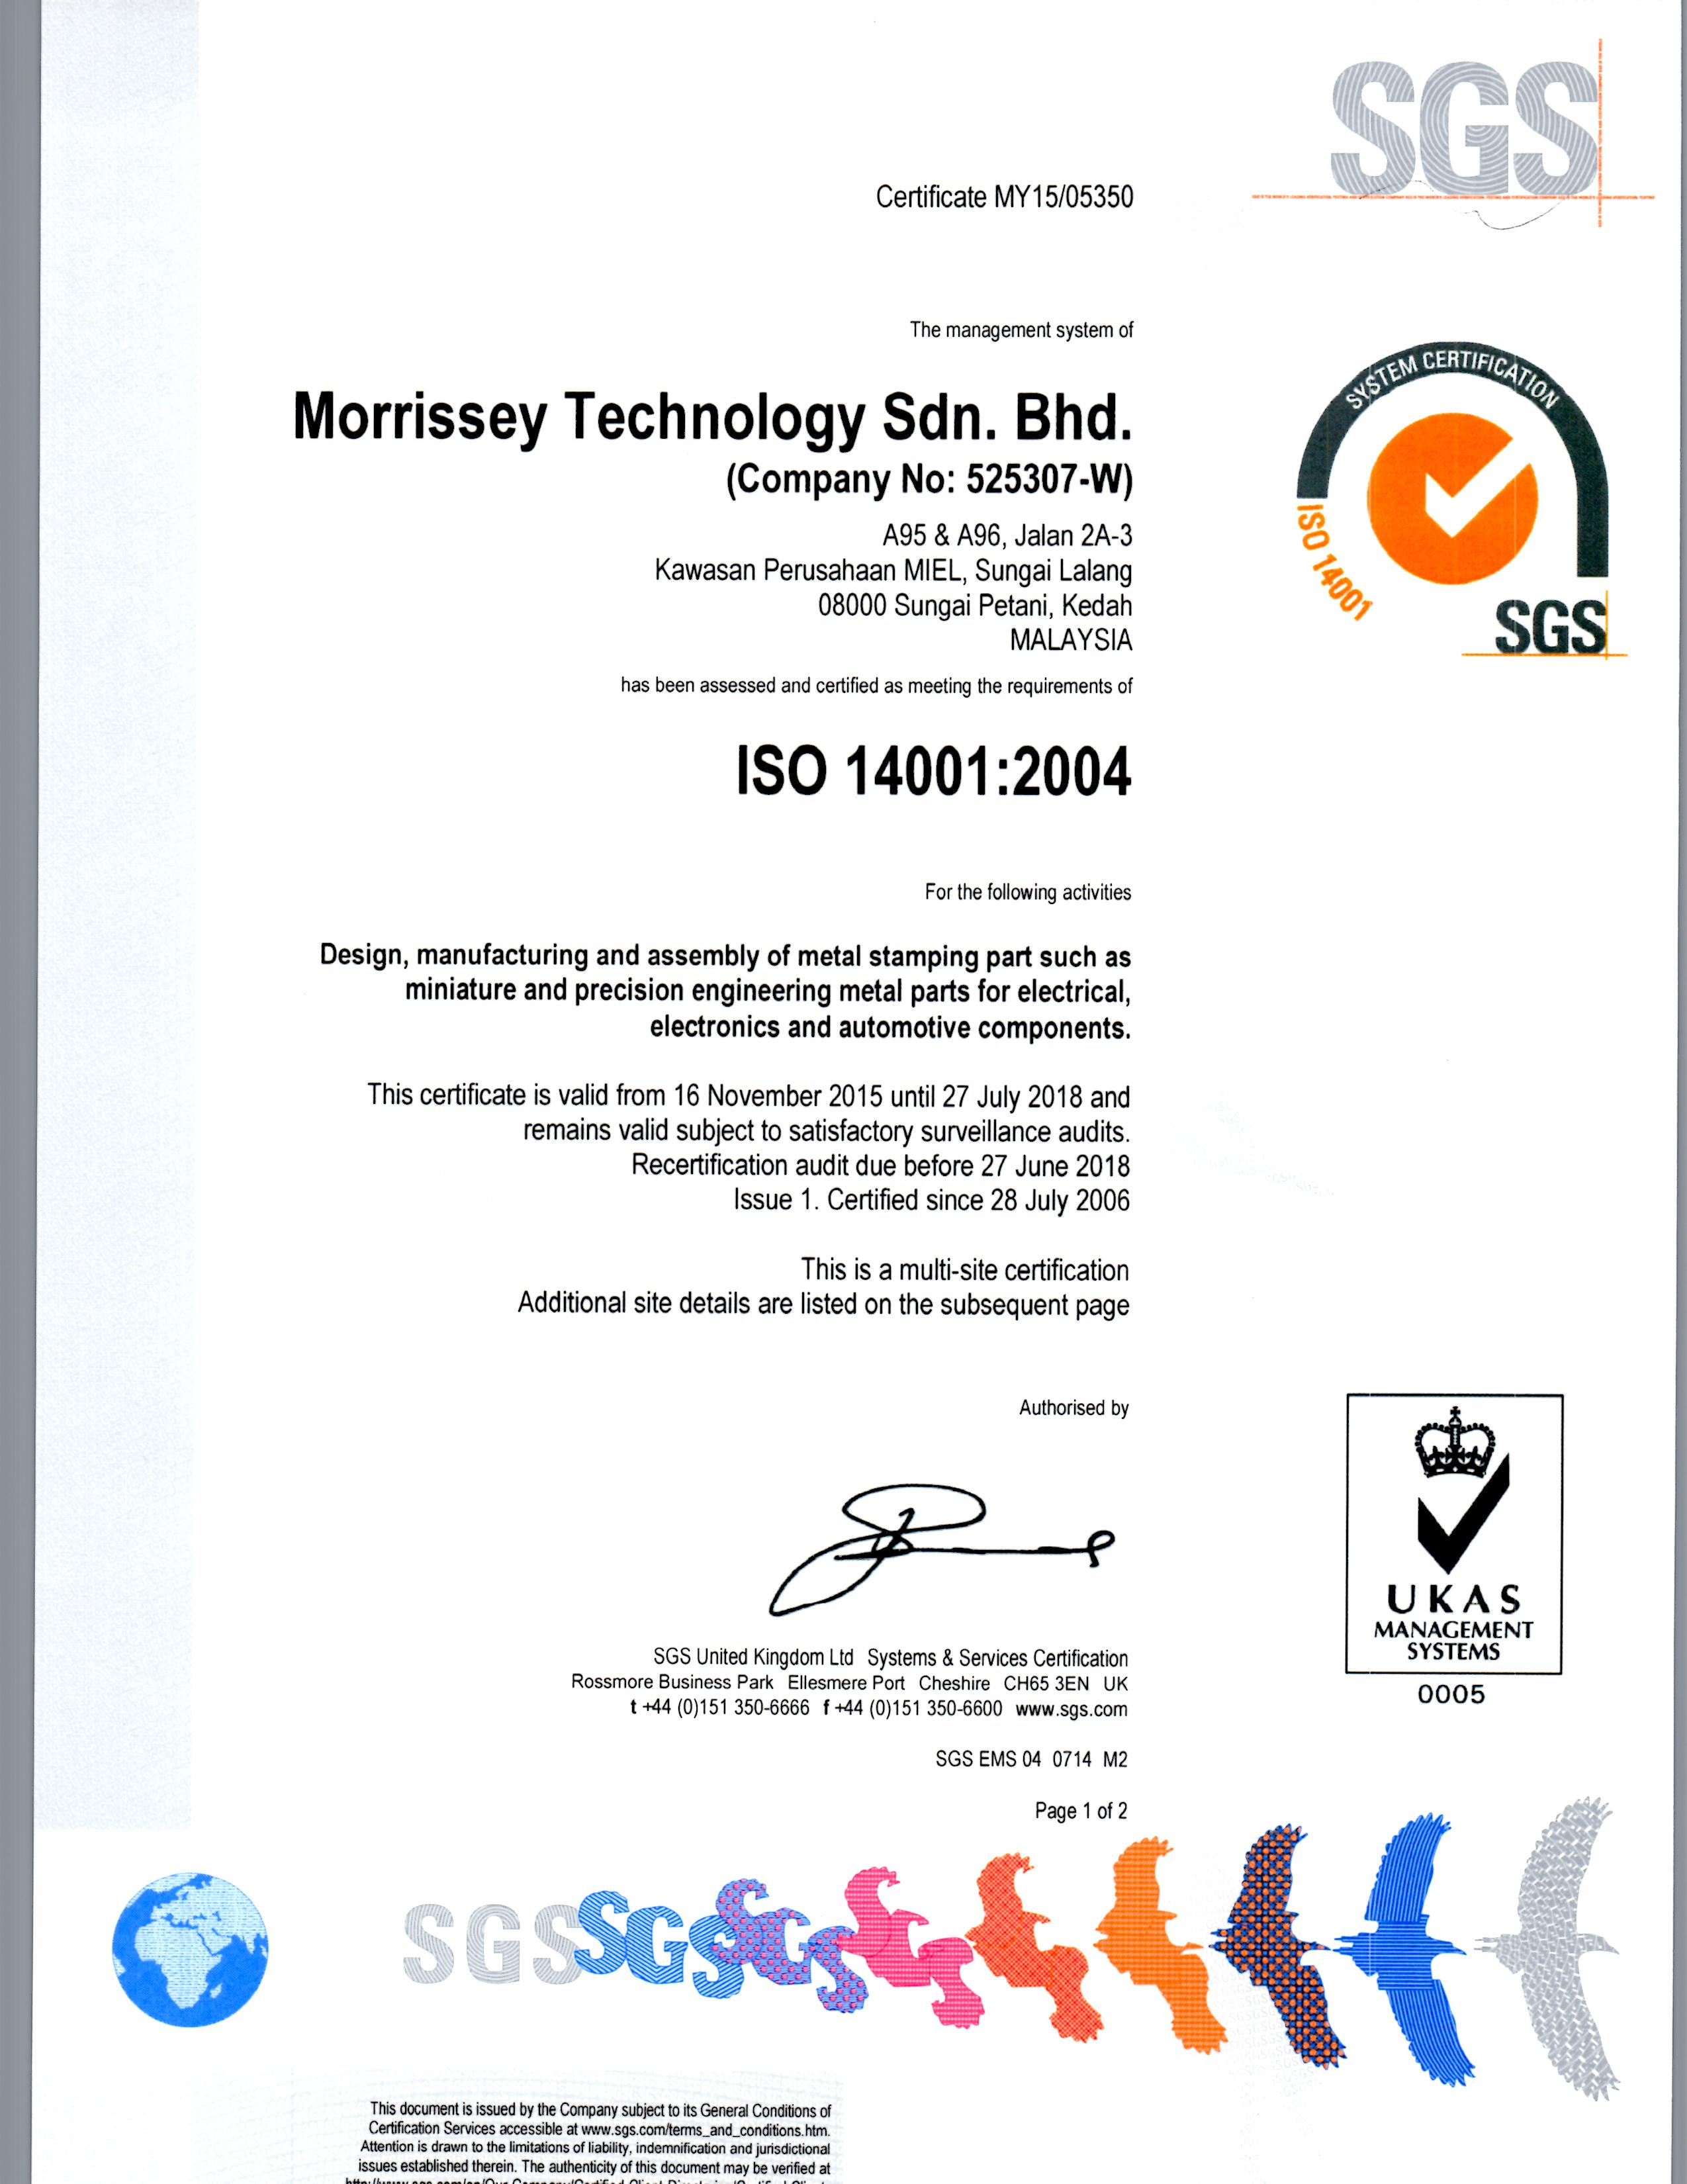 ISO 14001 Page 1 of 2